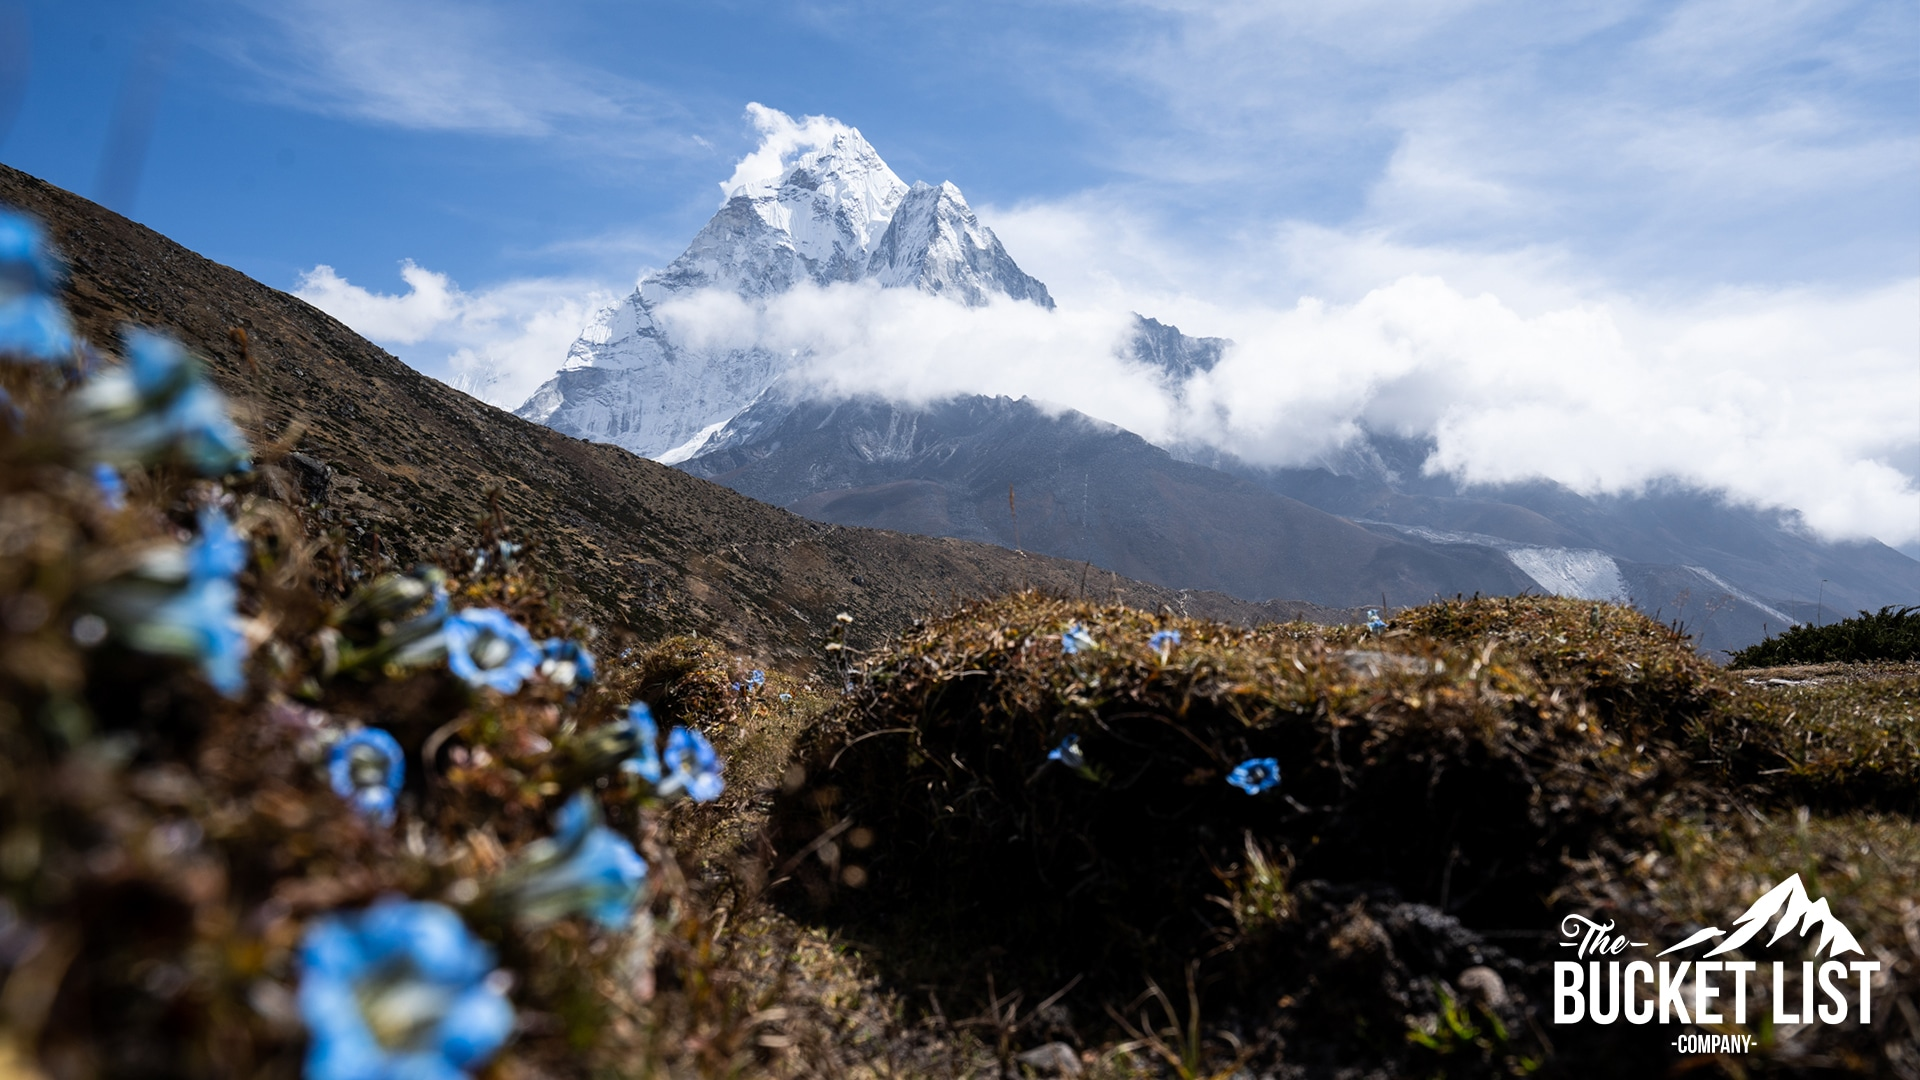 Mount Everest in the background, with some beautiful blue flowers infront.